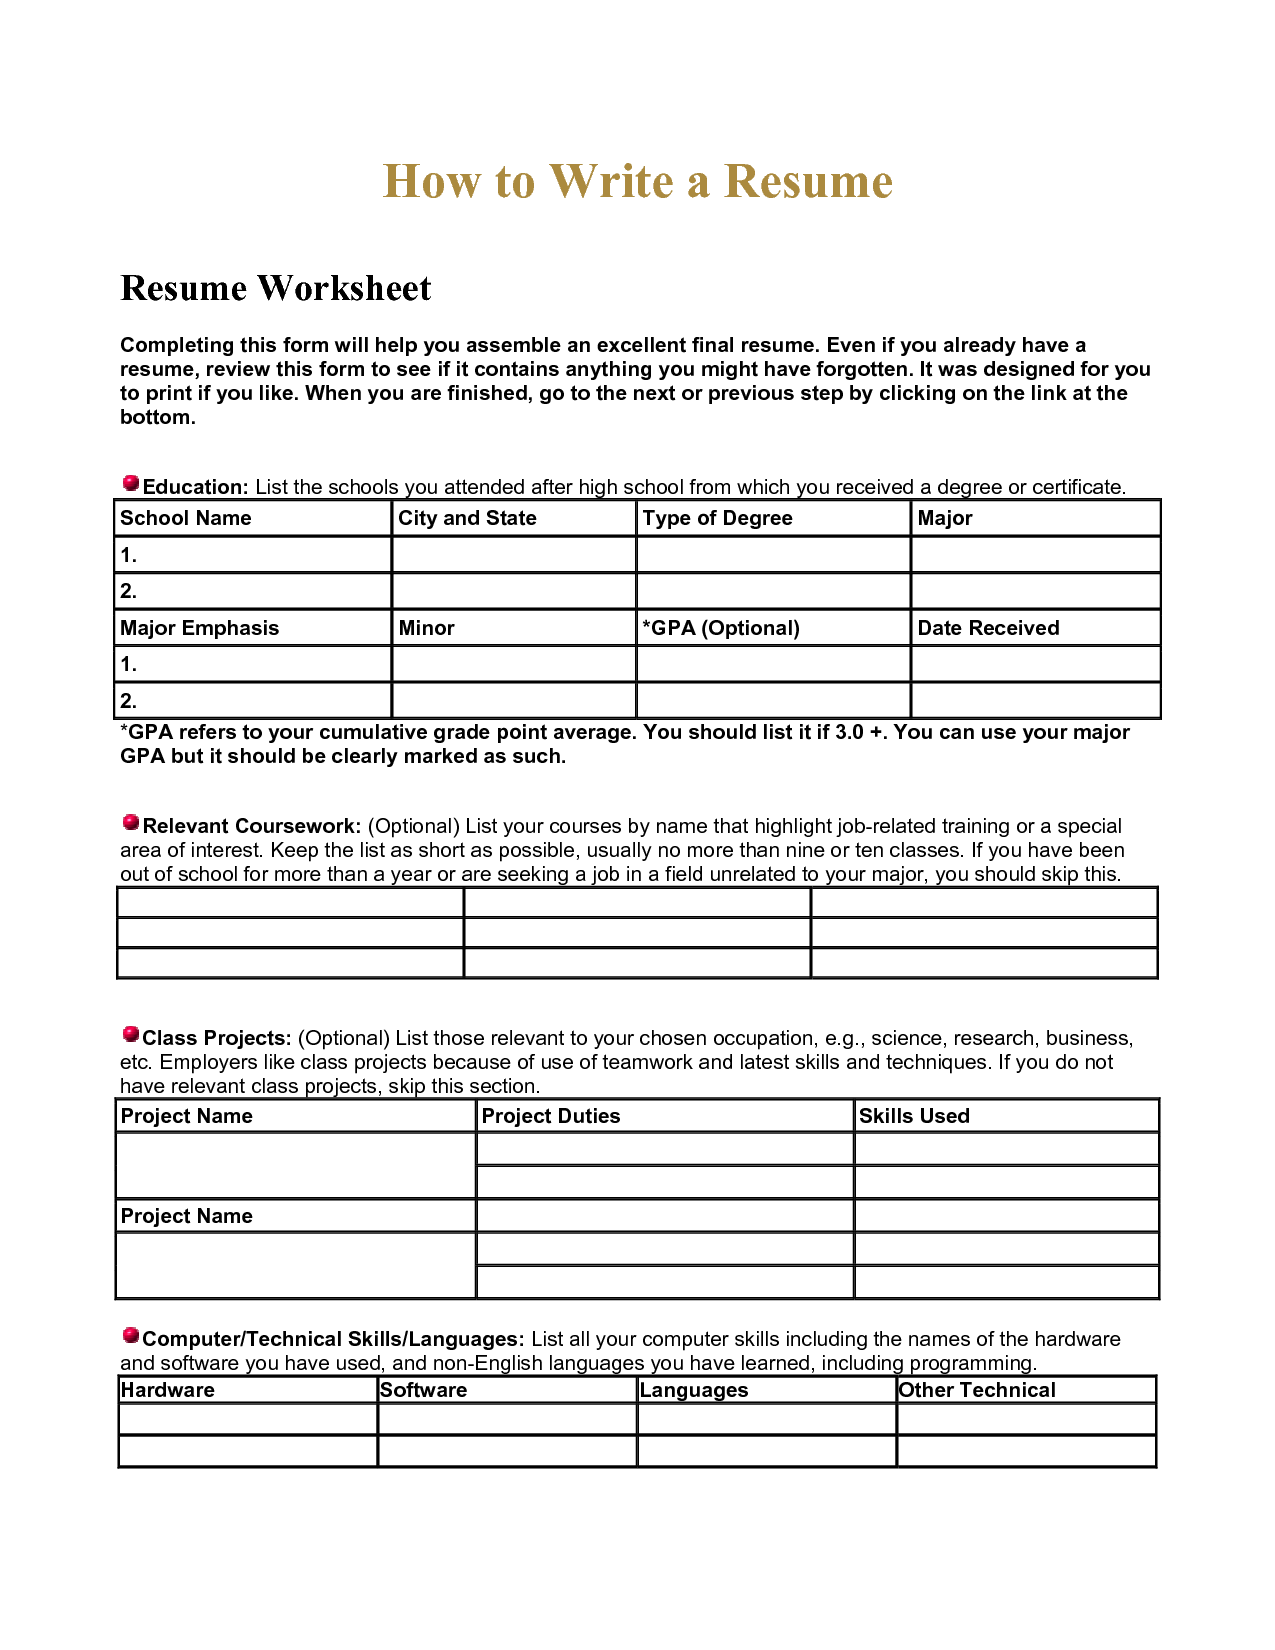 Worksheets Basic Computer Skills Worksheets high school resume worksheet using your academic experiences to build a resume